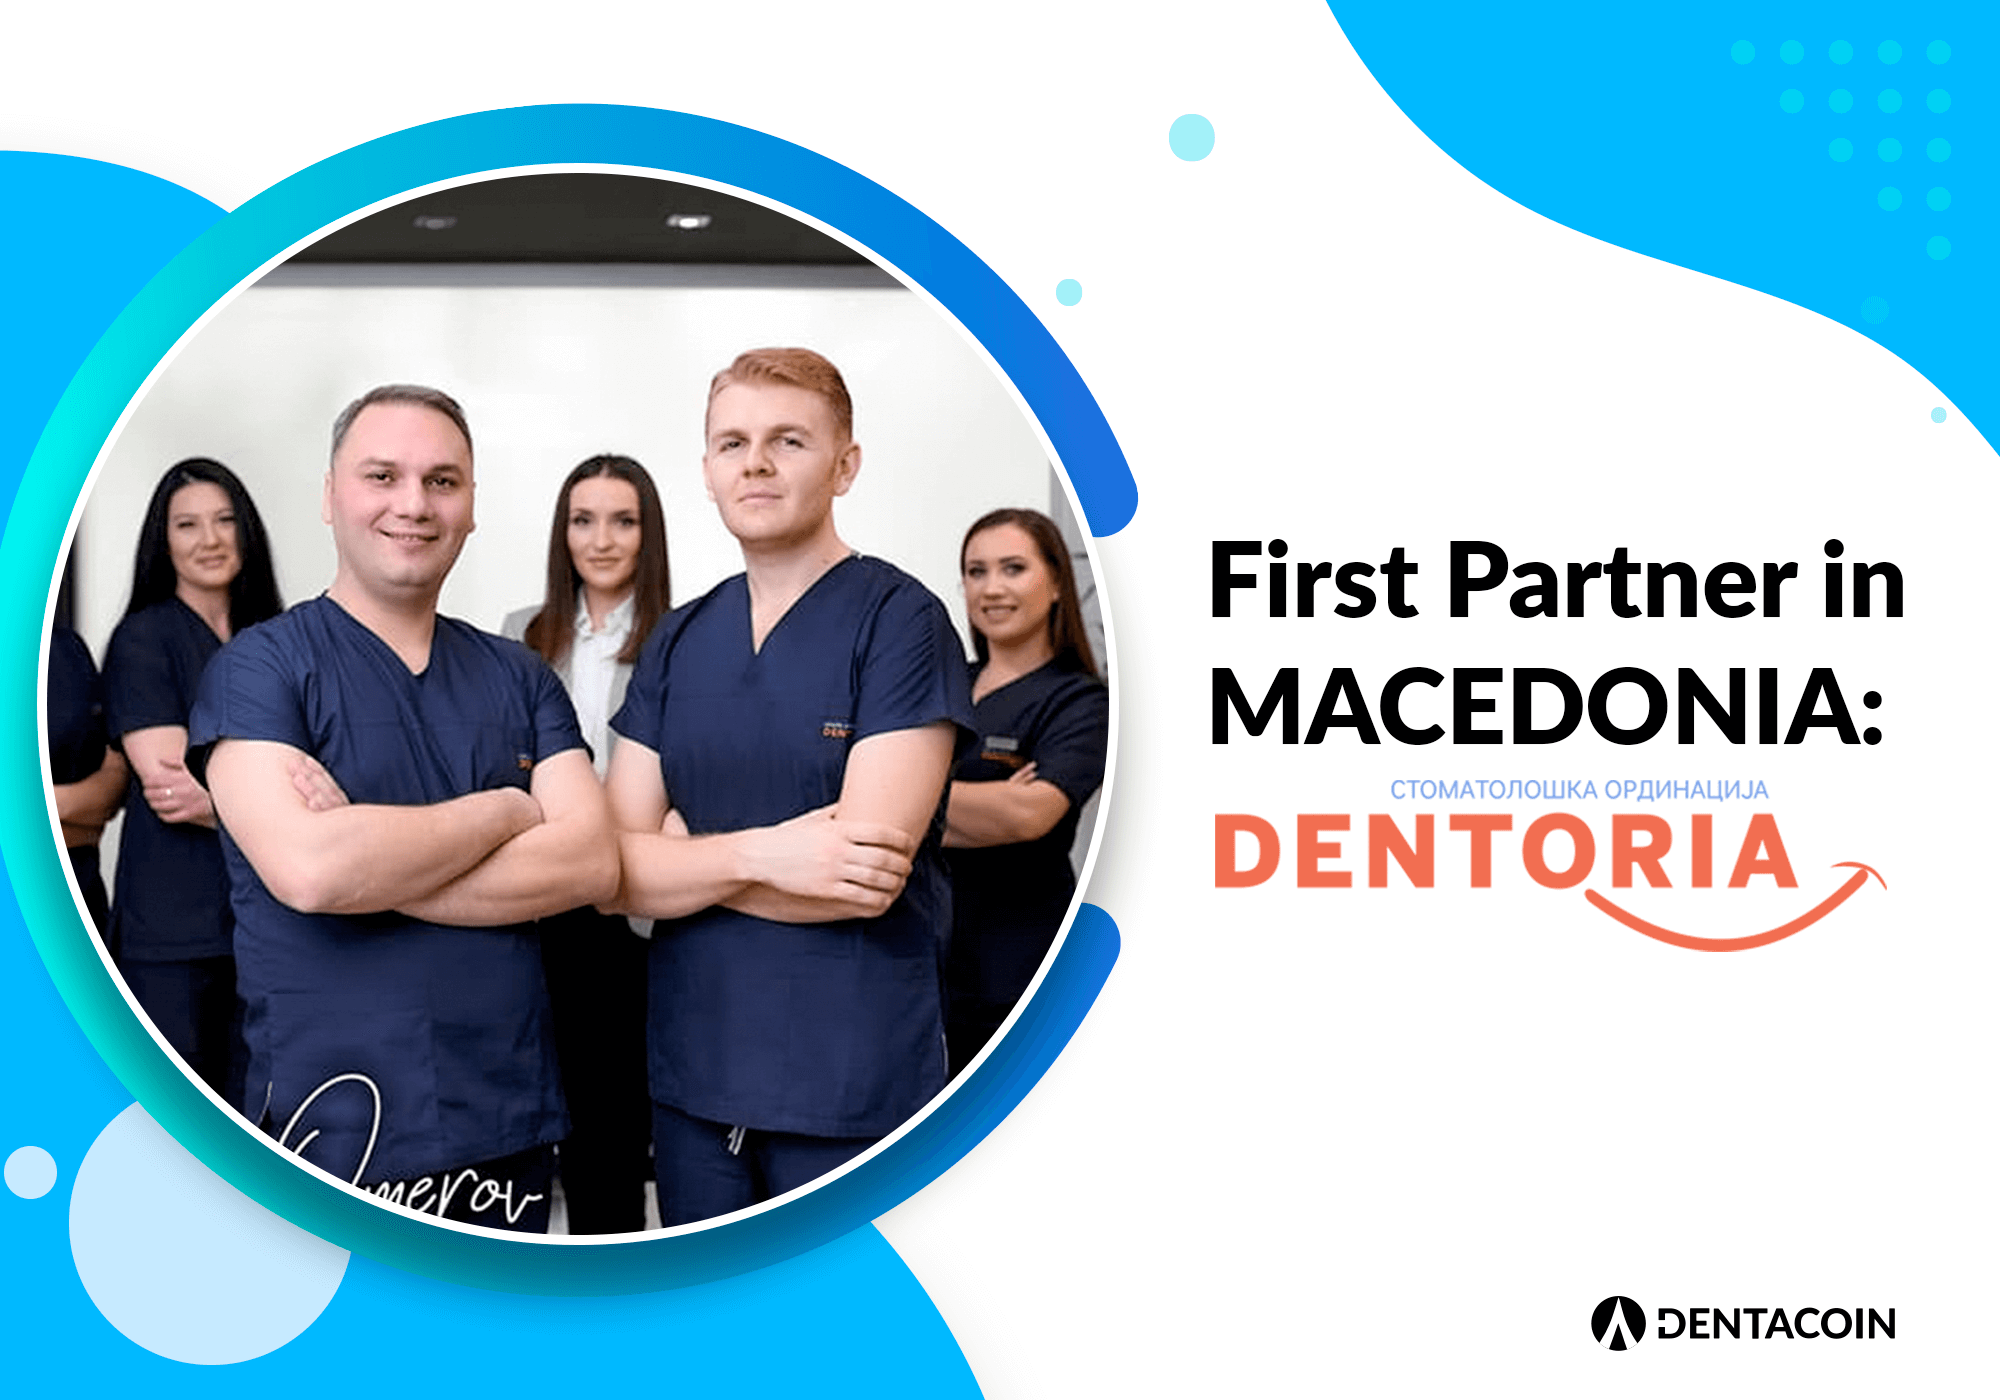 Dentacoin in macedonia